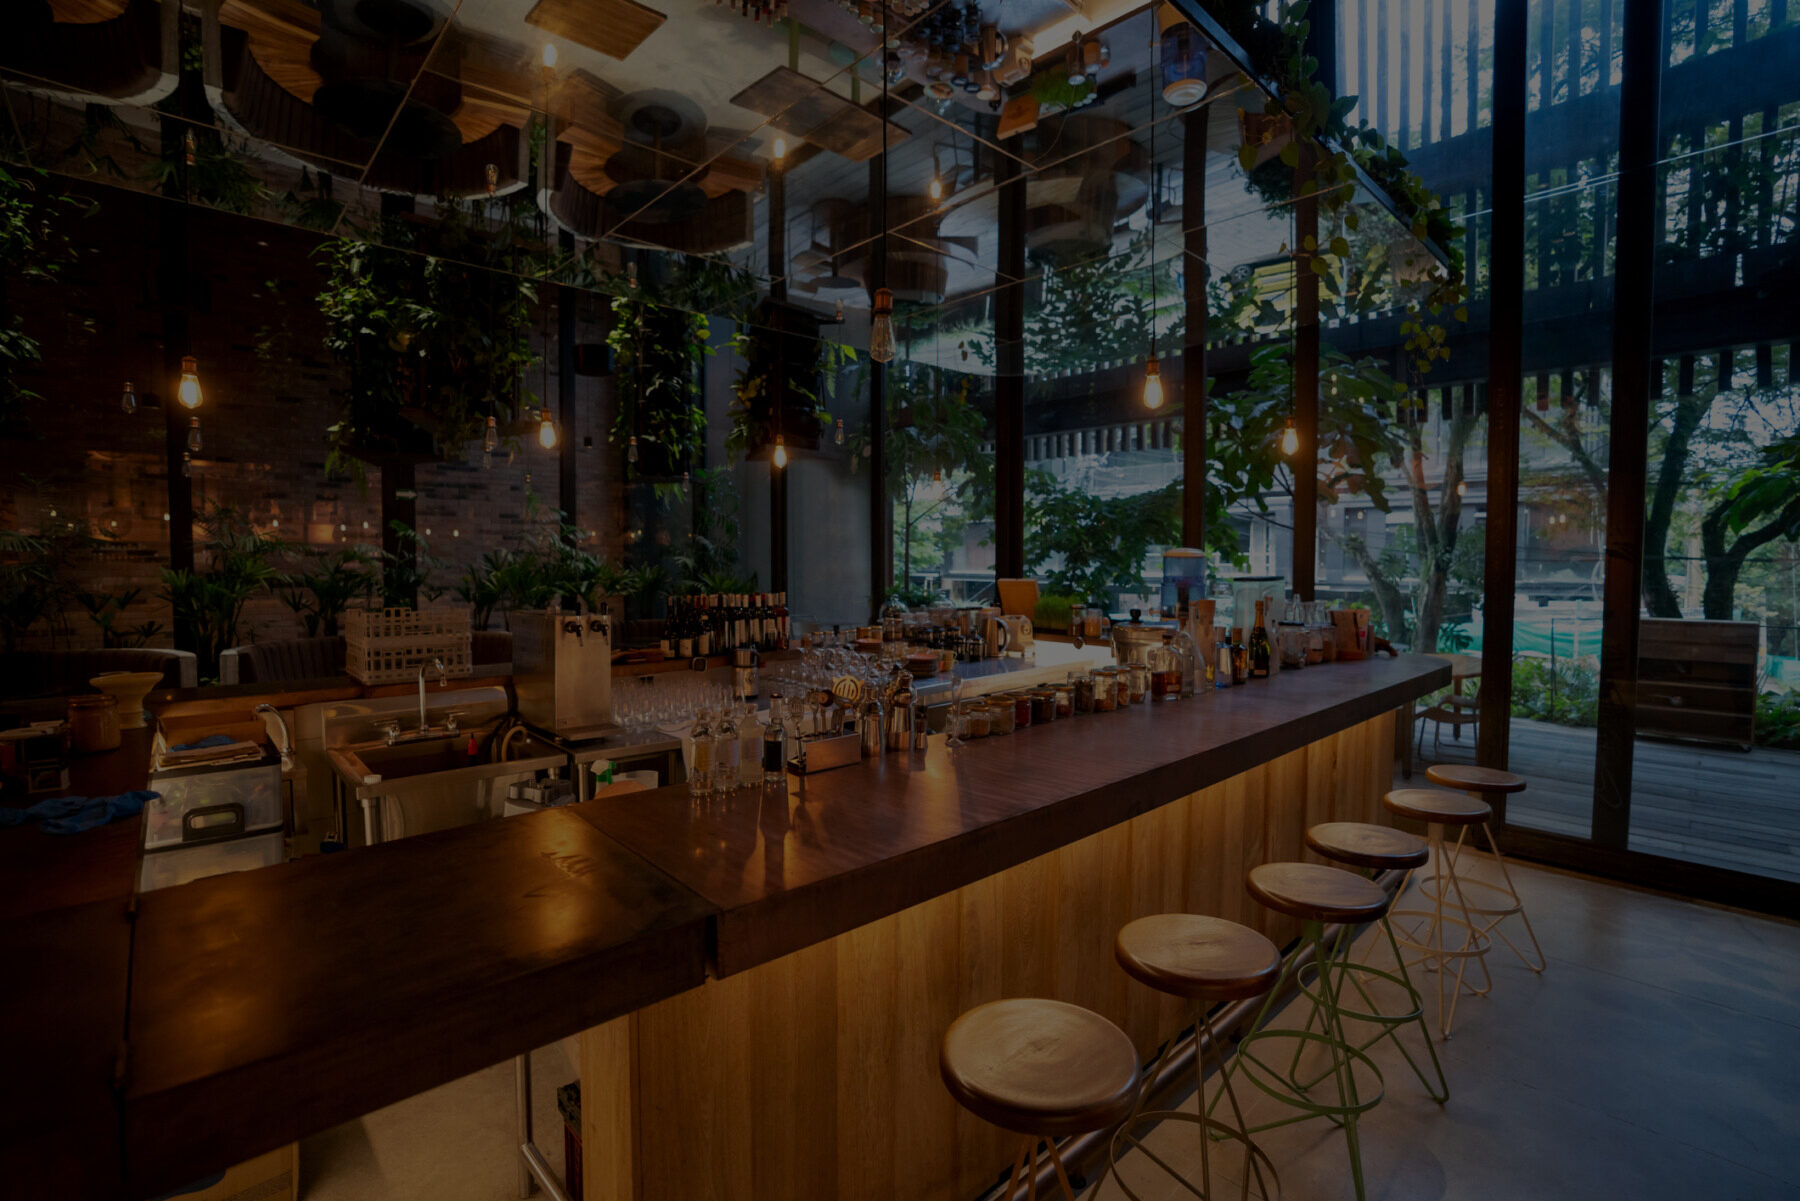 Interior of contemporary upscale bar with greenery throughout